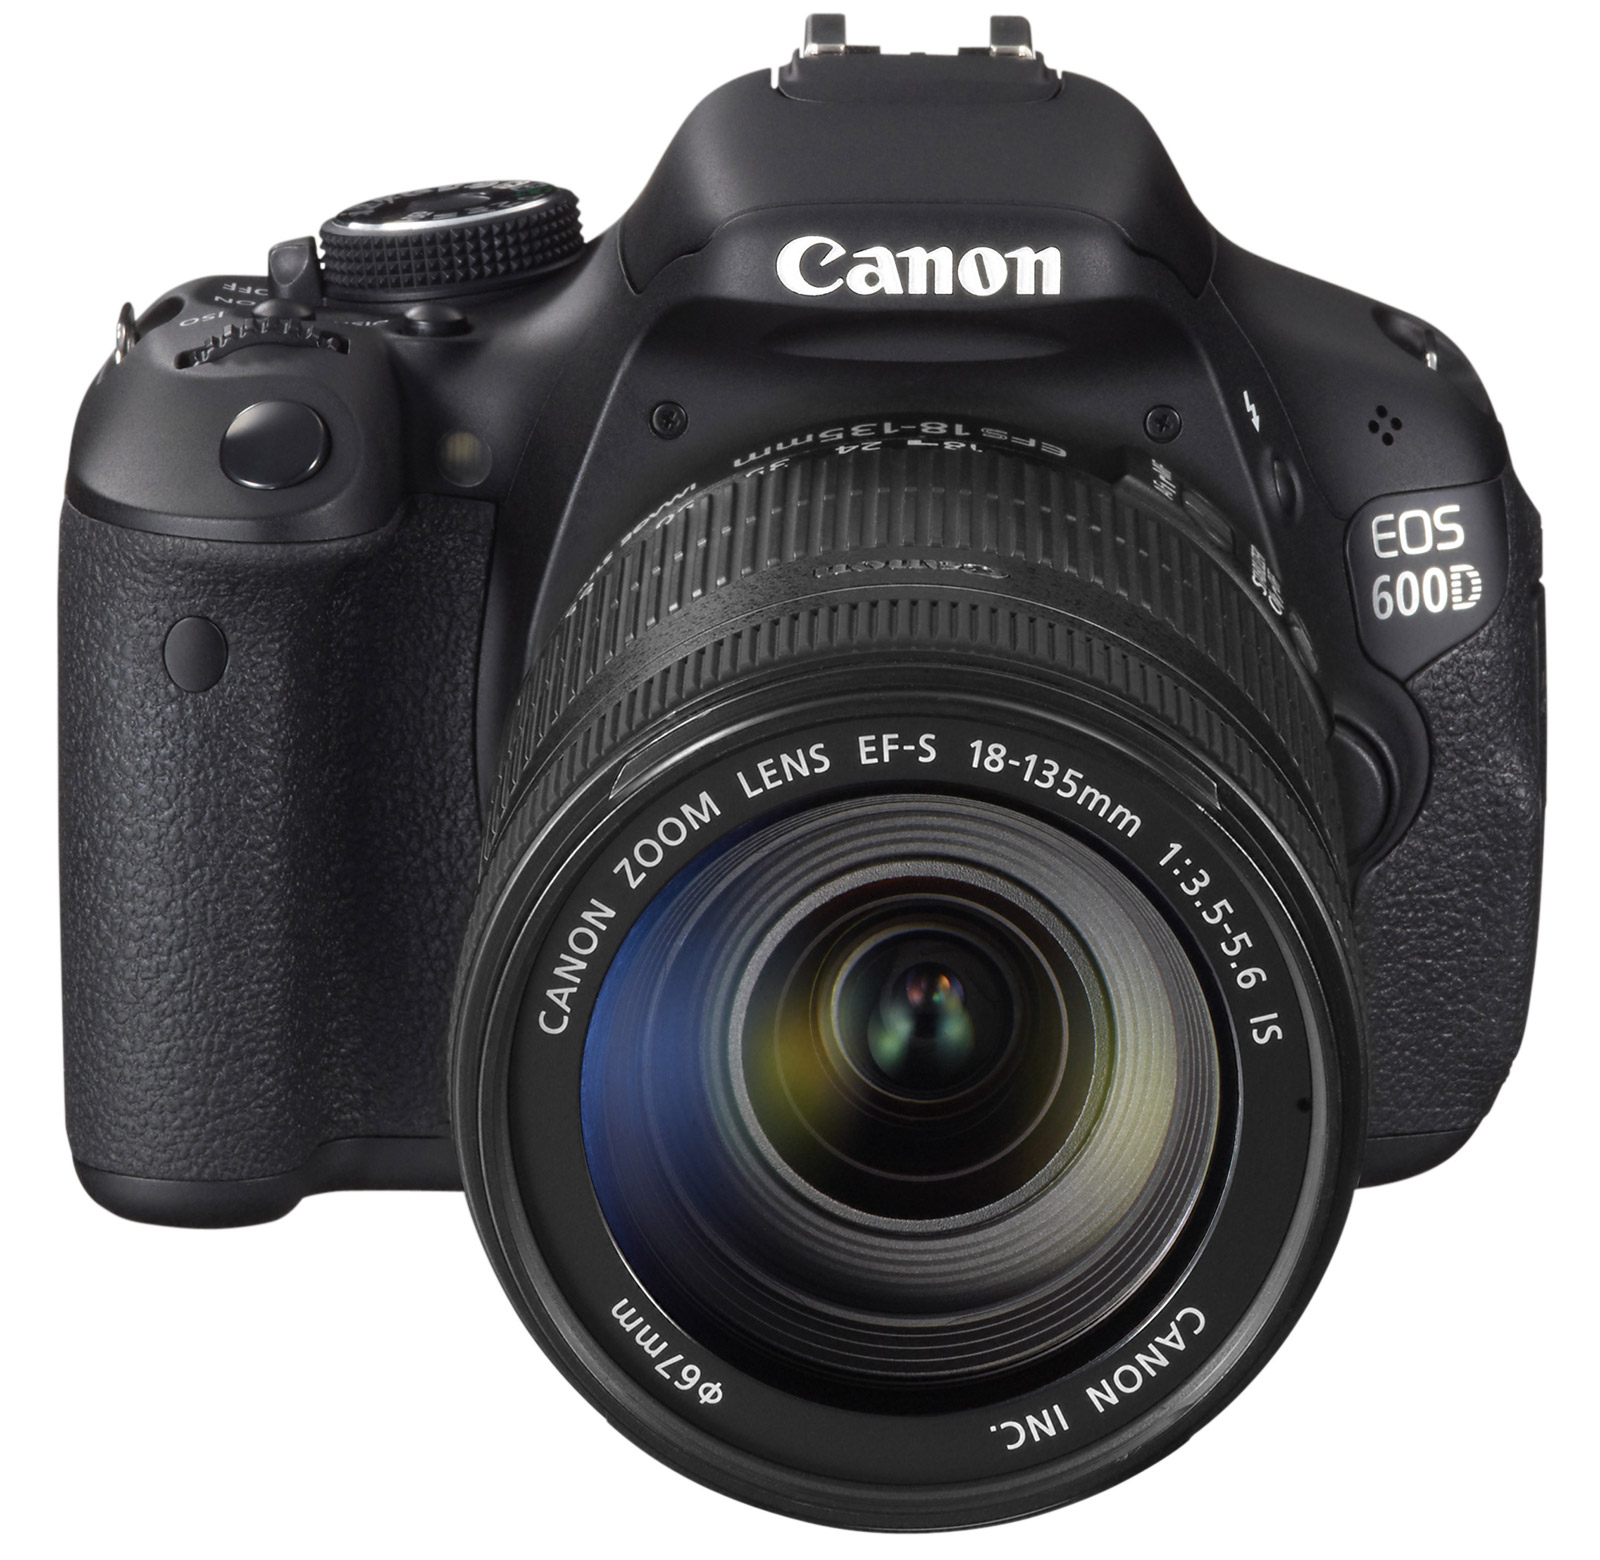 Canon EOS 600D DSLR Announced